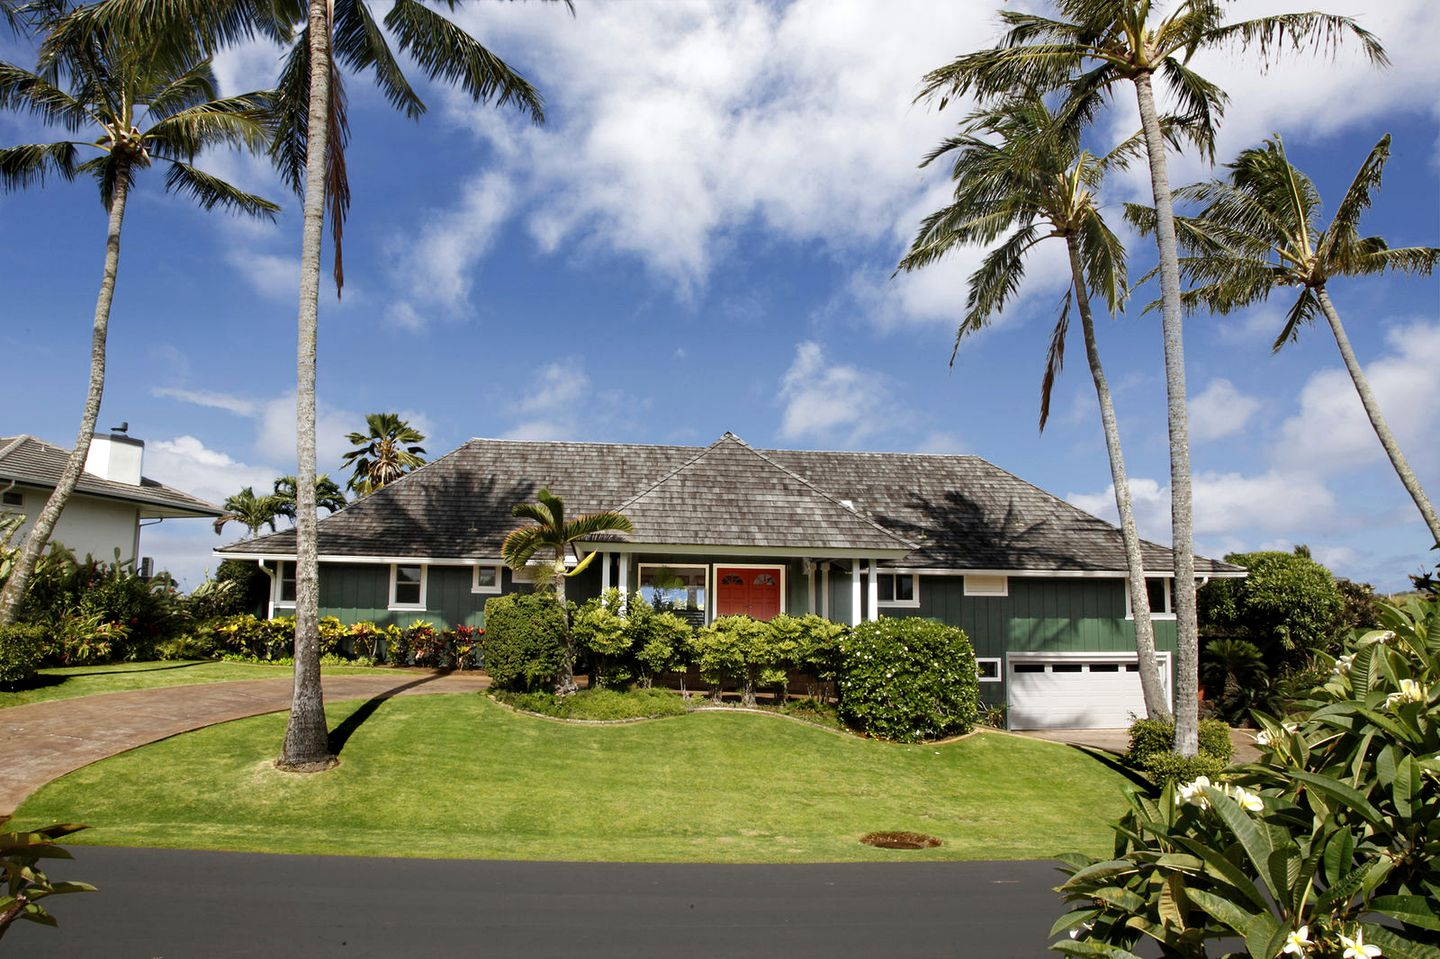 Beach Houses (Koloa, Hawaii, United States)